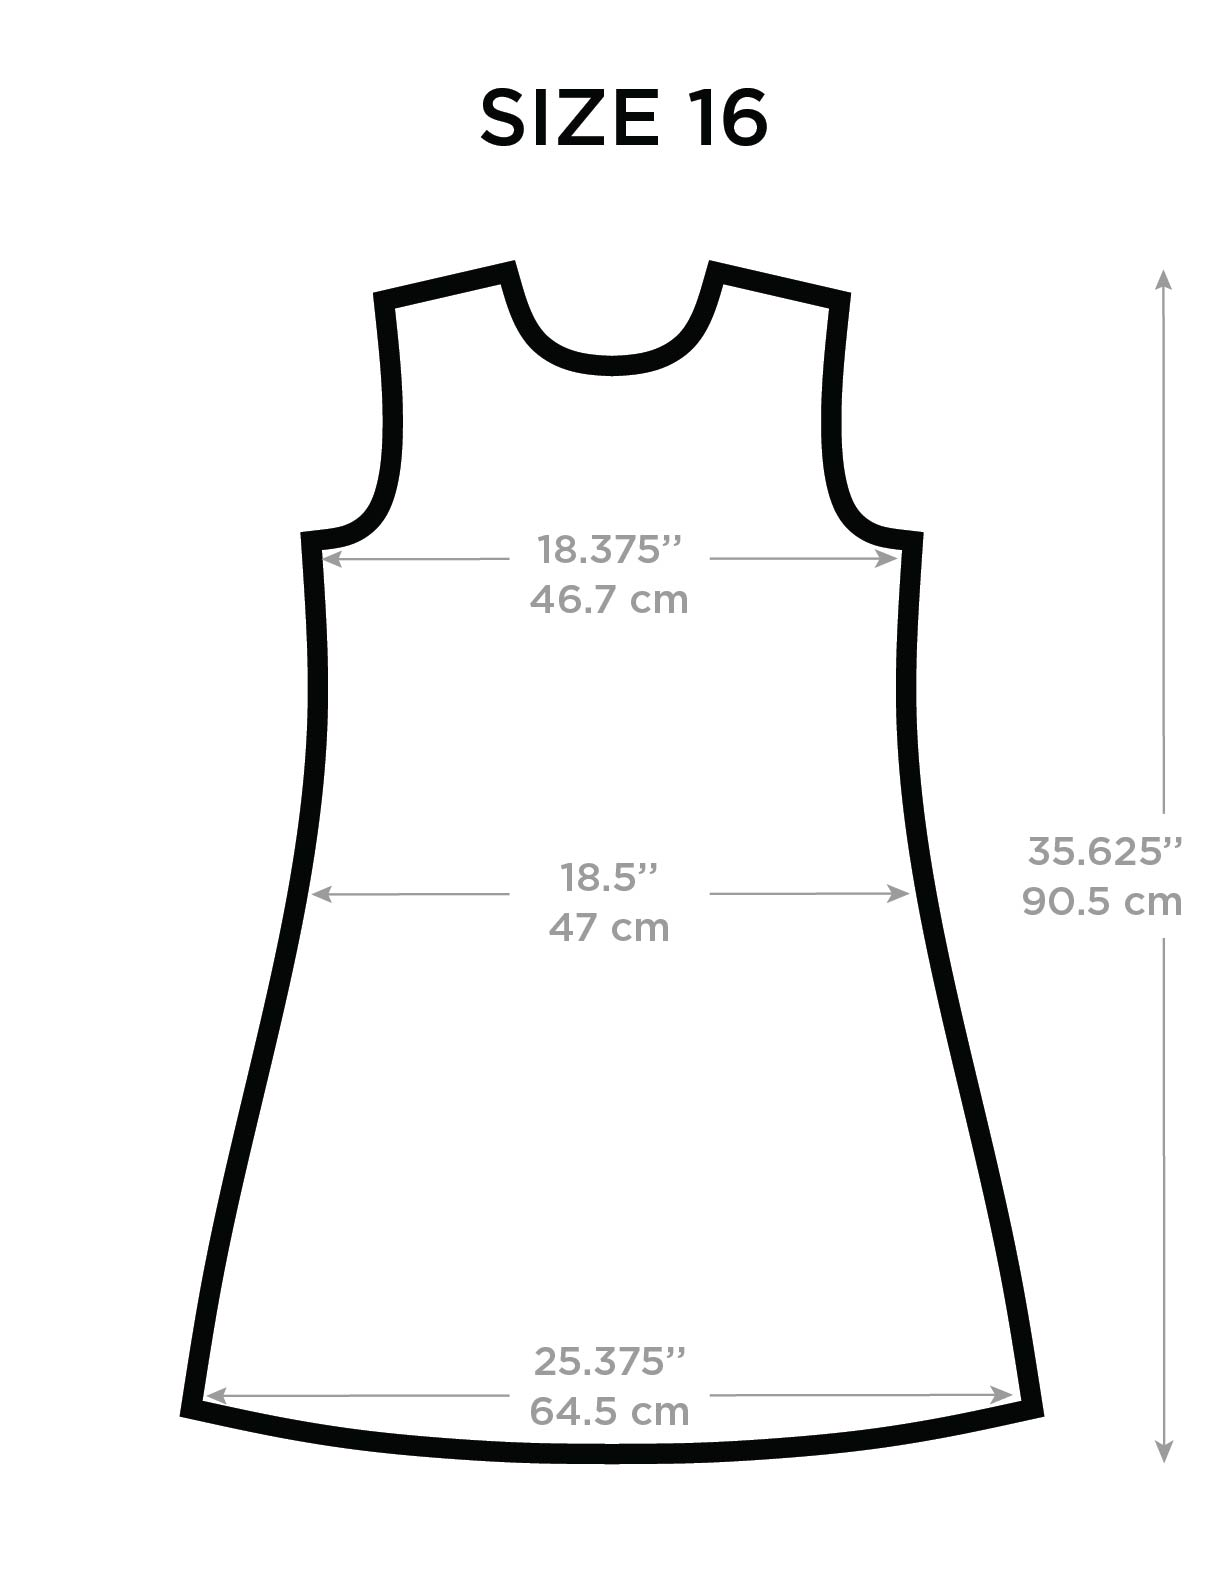 Oct 08, · A size 4 would be about 26 inches. Generally you can add 21 or 22 to the dress size (4, 6, 7) and end up with the waist size in inches. Keep in mind that not every size 4 fits the same but .